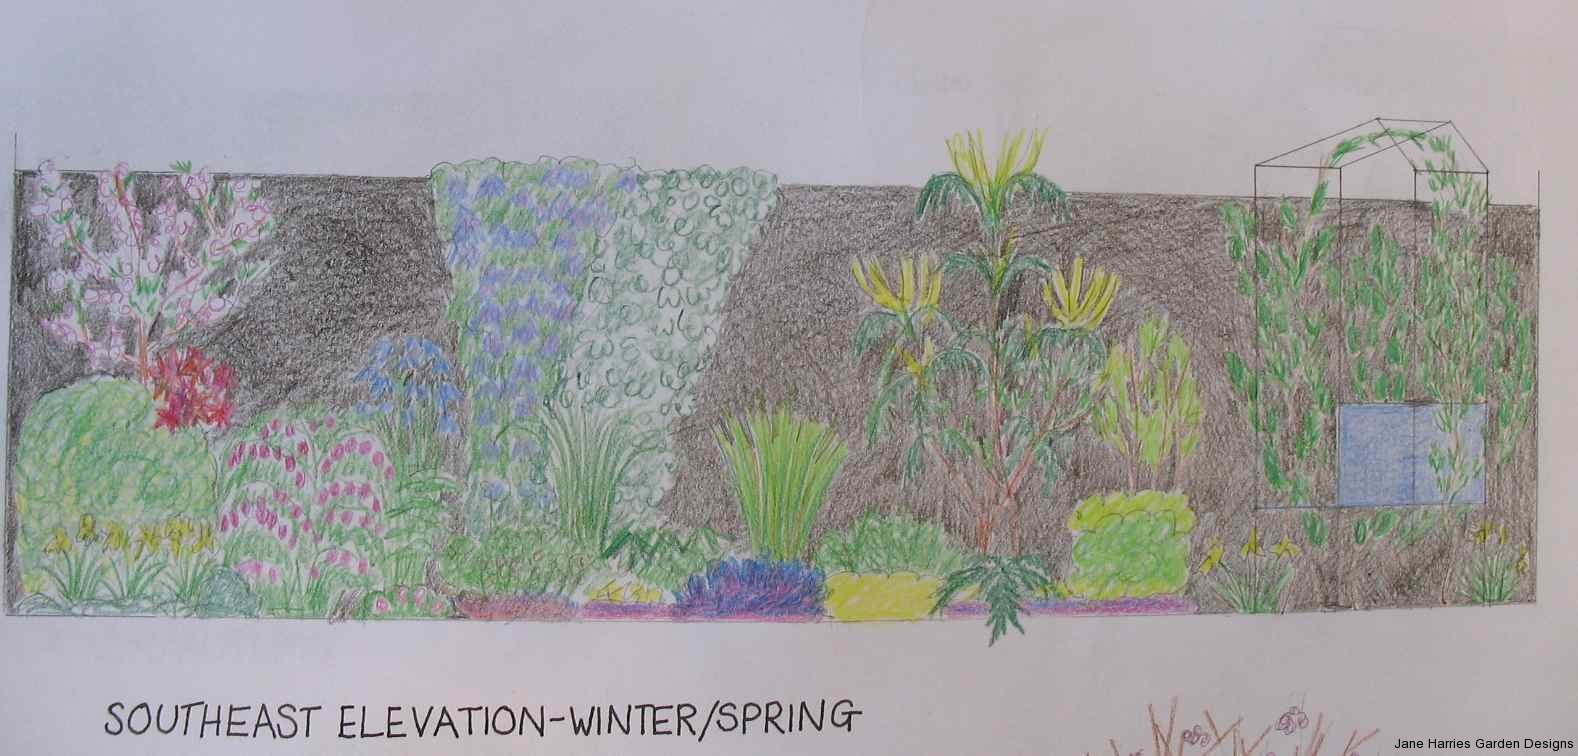 SW elevation winter/spring